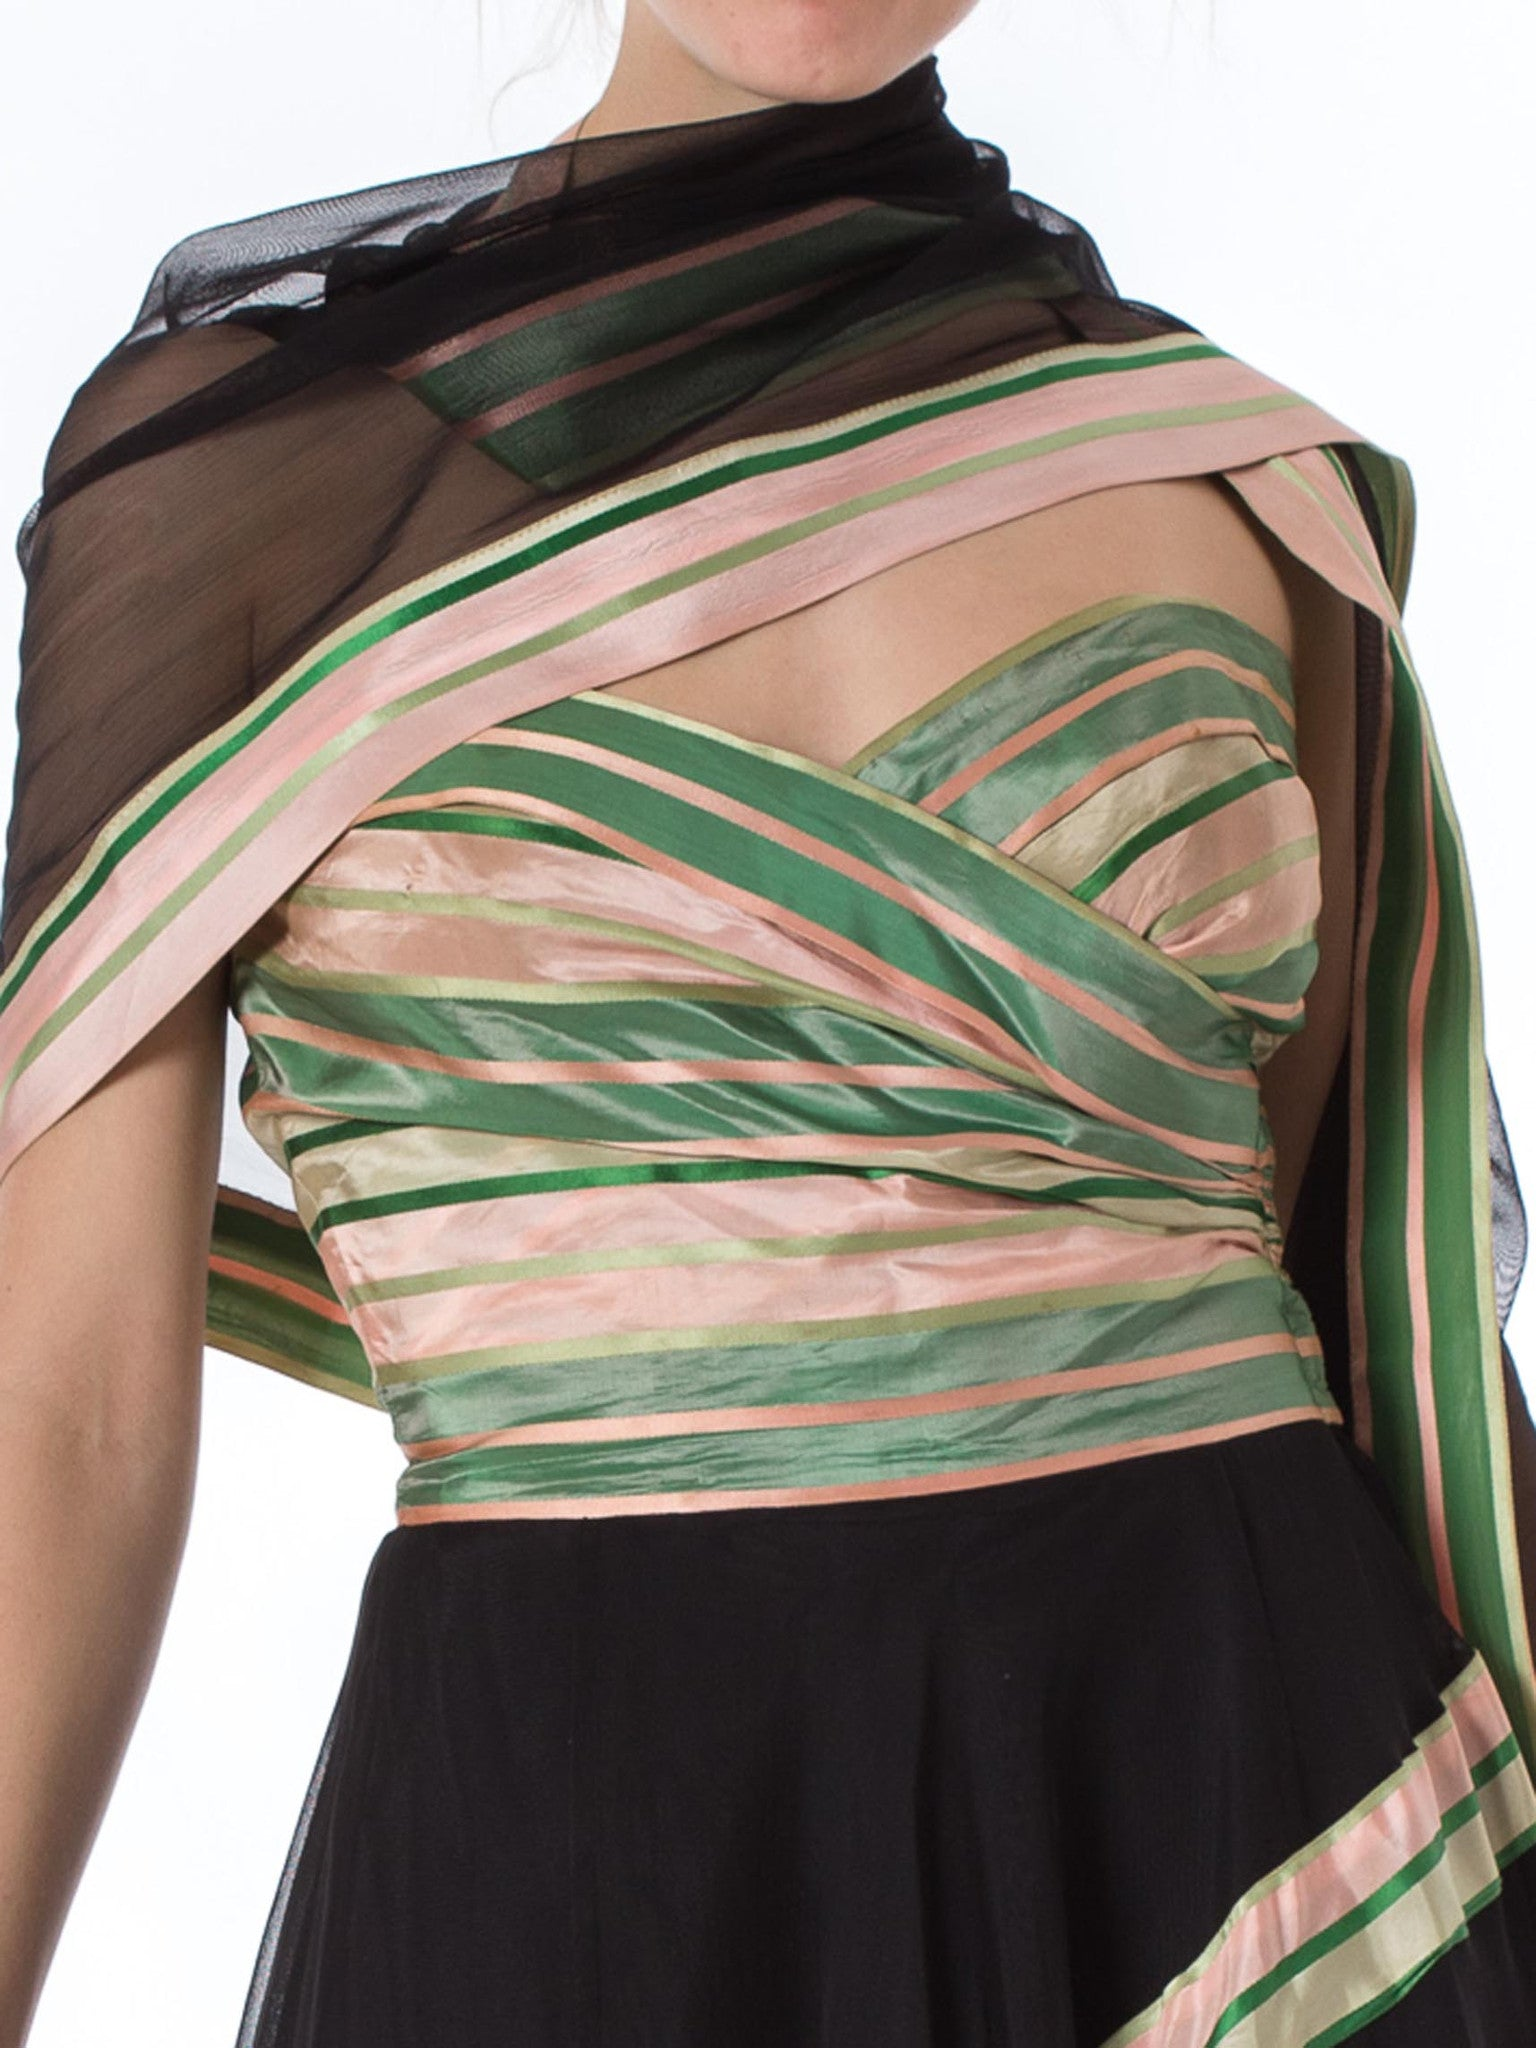 1940S Black Net Strapless Gown With Green & Pink Striped Taffeta Bodice Shawl